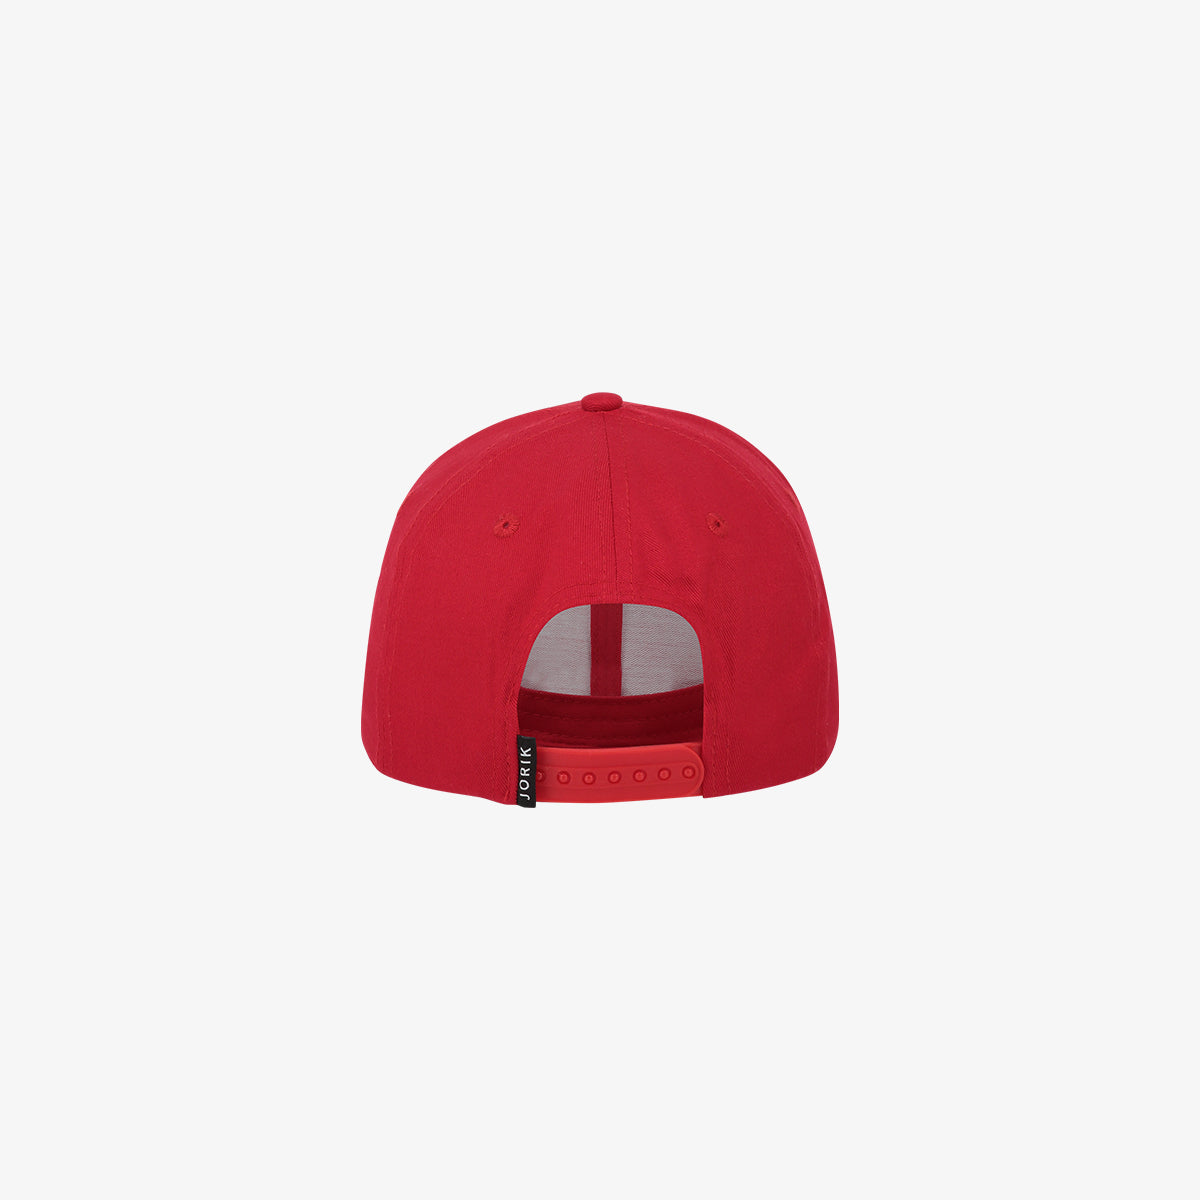 Jorik logo cap red